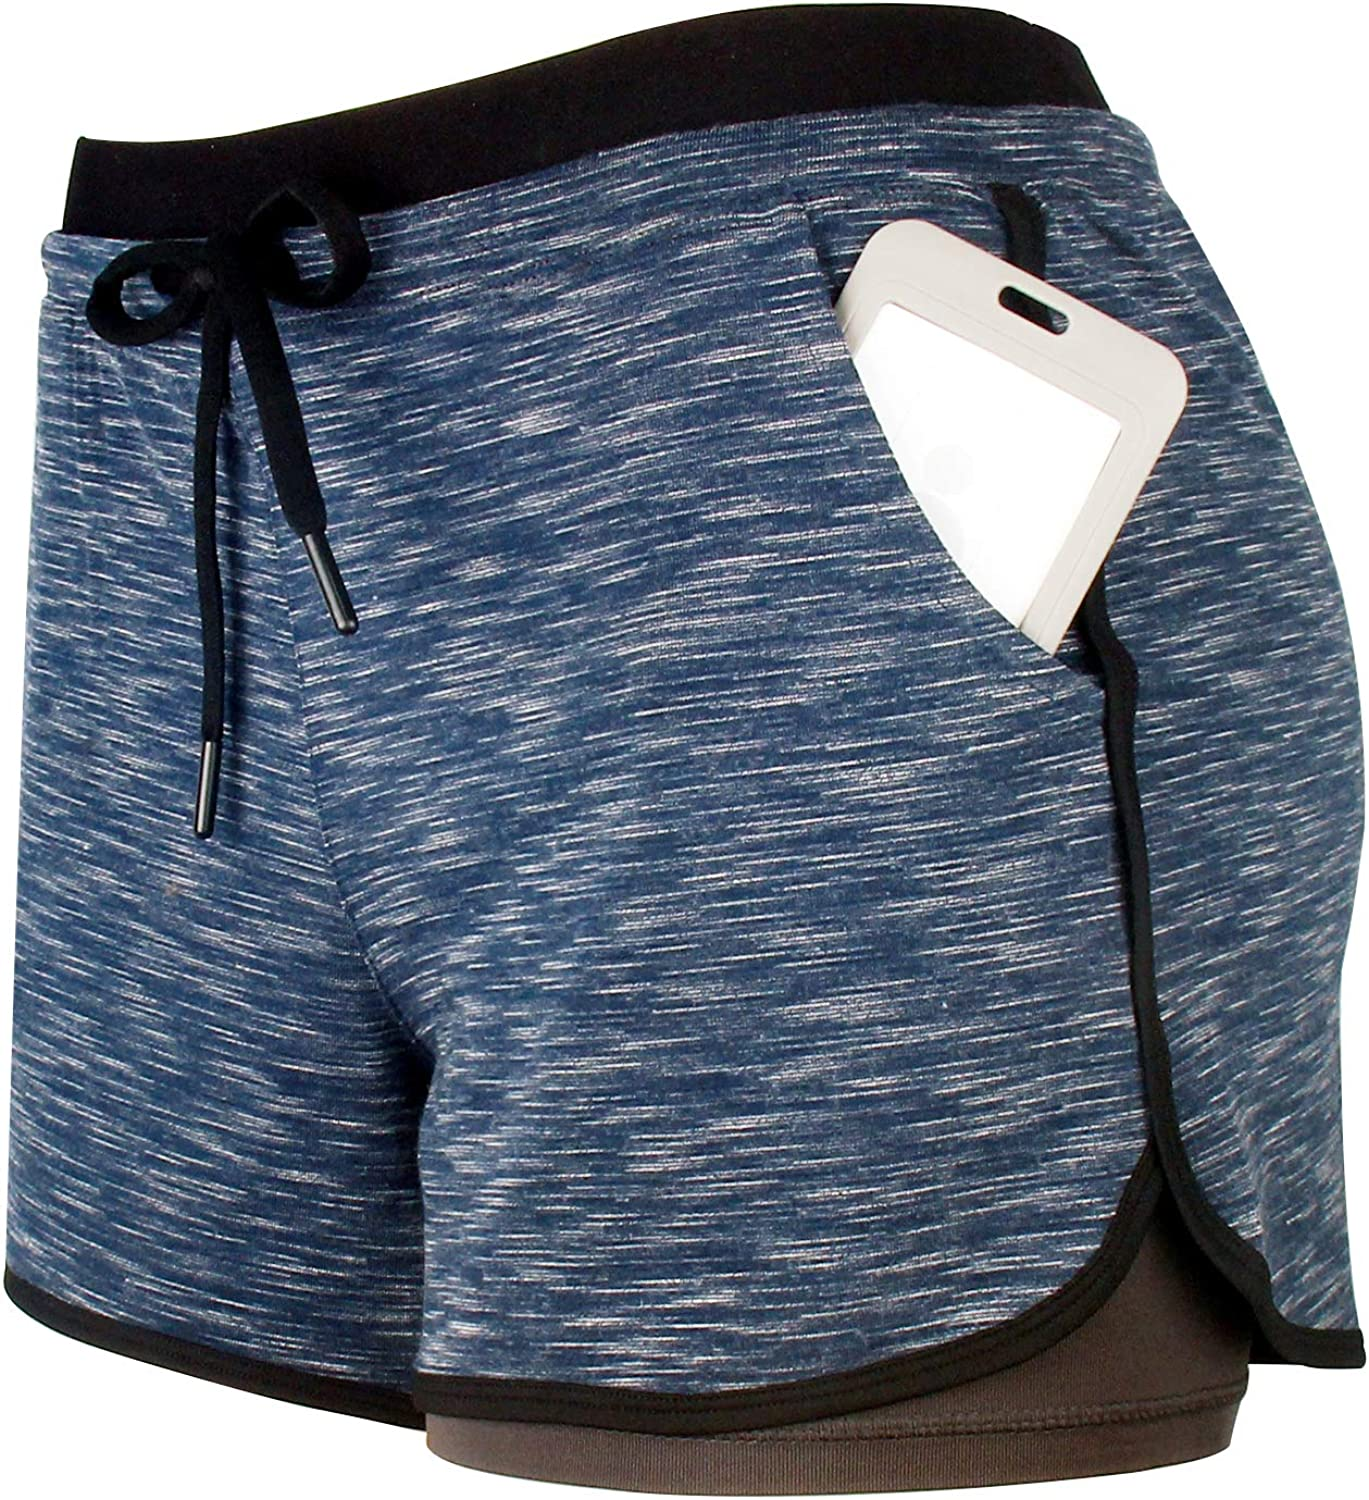 RIBOOM Women Workout Running quality assurance Very popular Shorts 2 S 1 Athletic in Sport Yoga